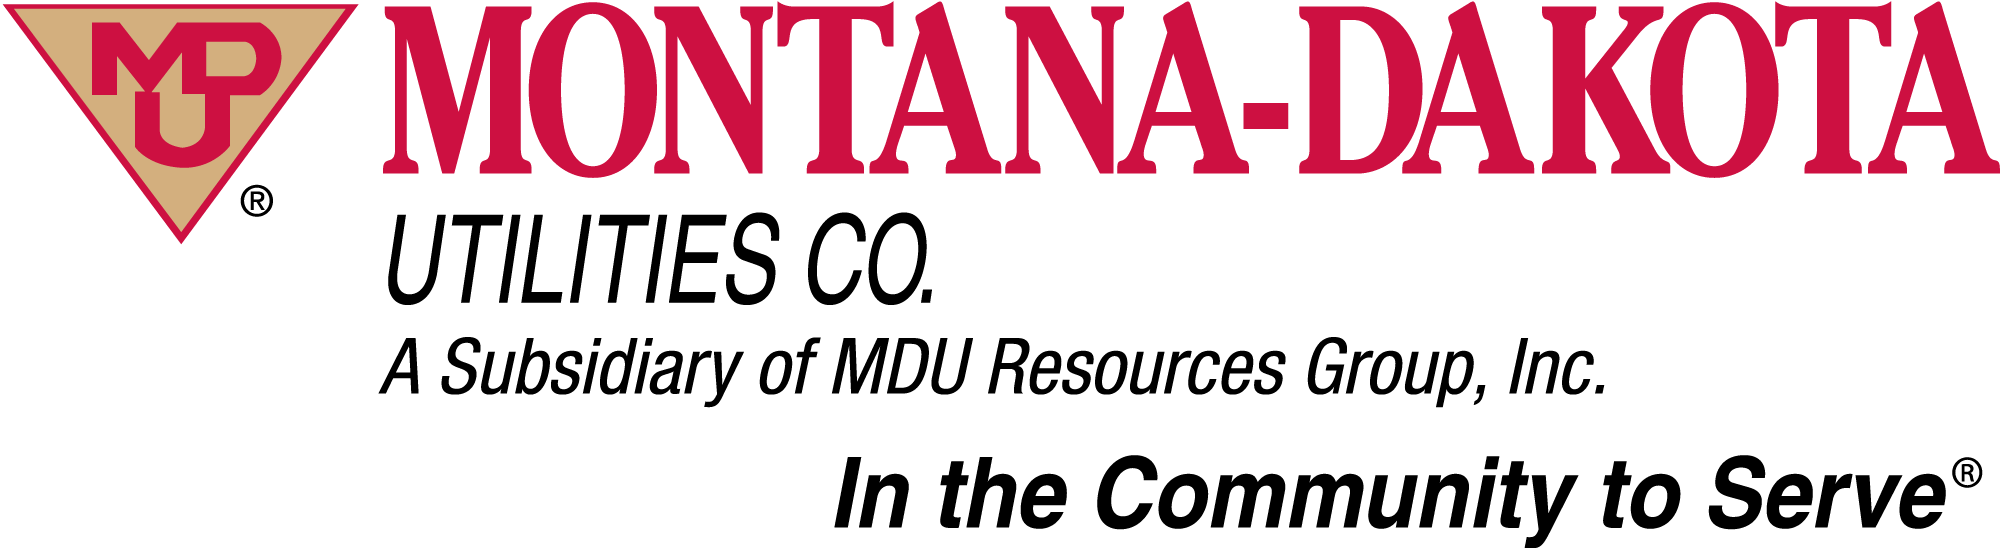 Montana-Dakota Utilities